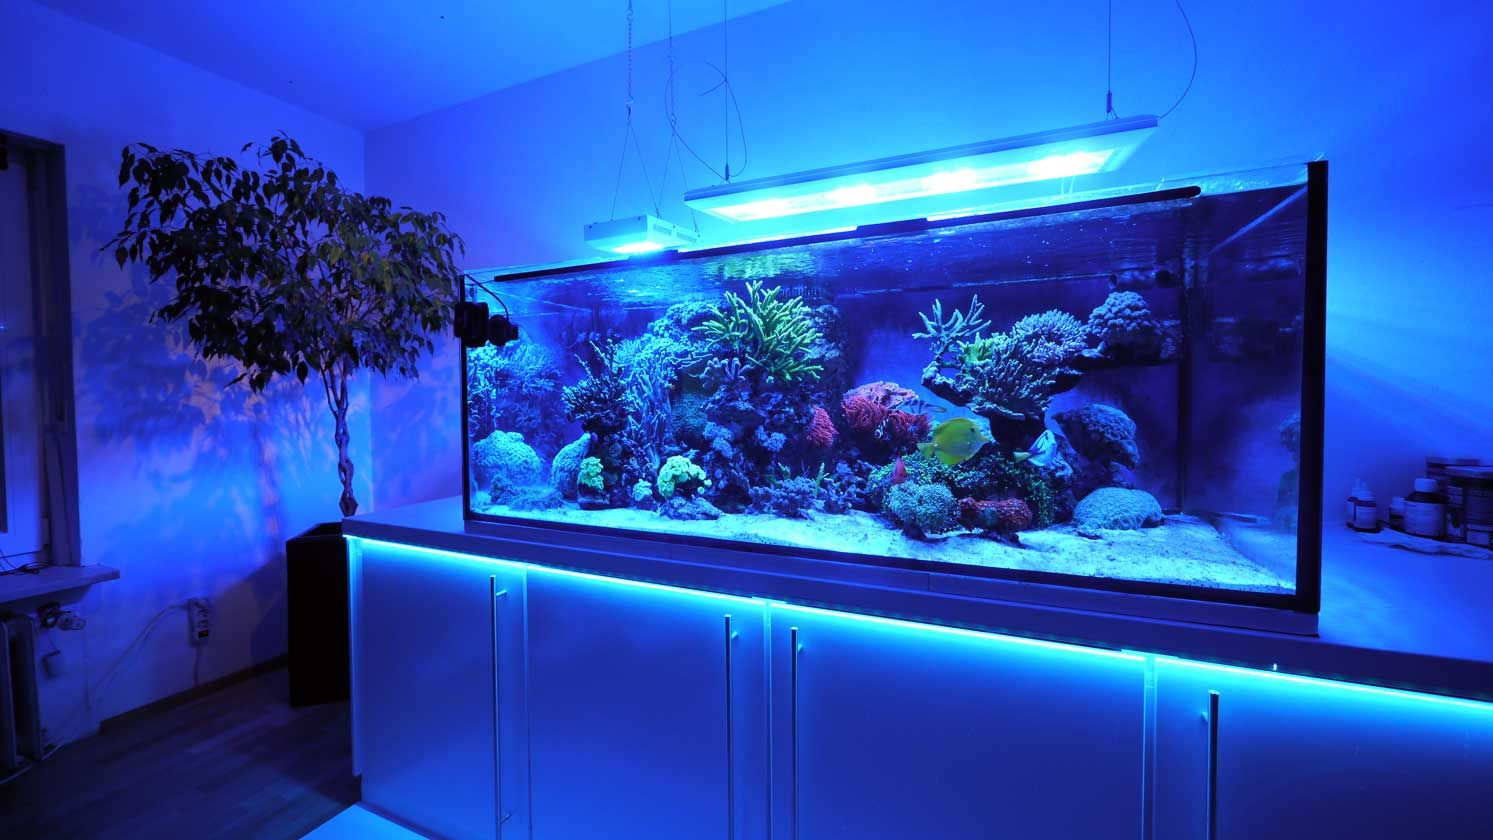 das 770 liter meerwasser aquarium von matthias sch tt. Black Bedroom Furniture Sets. Home Design Ideas